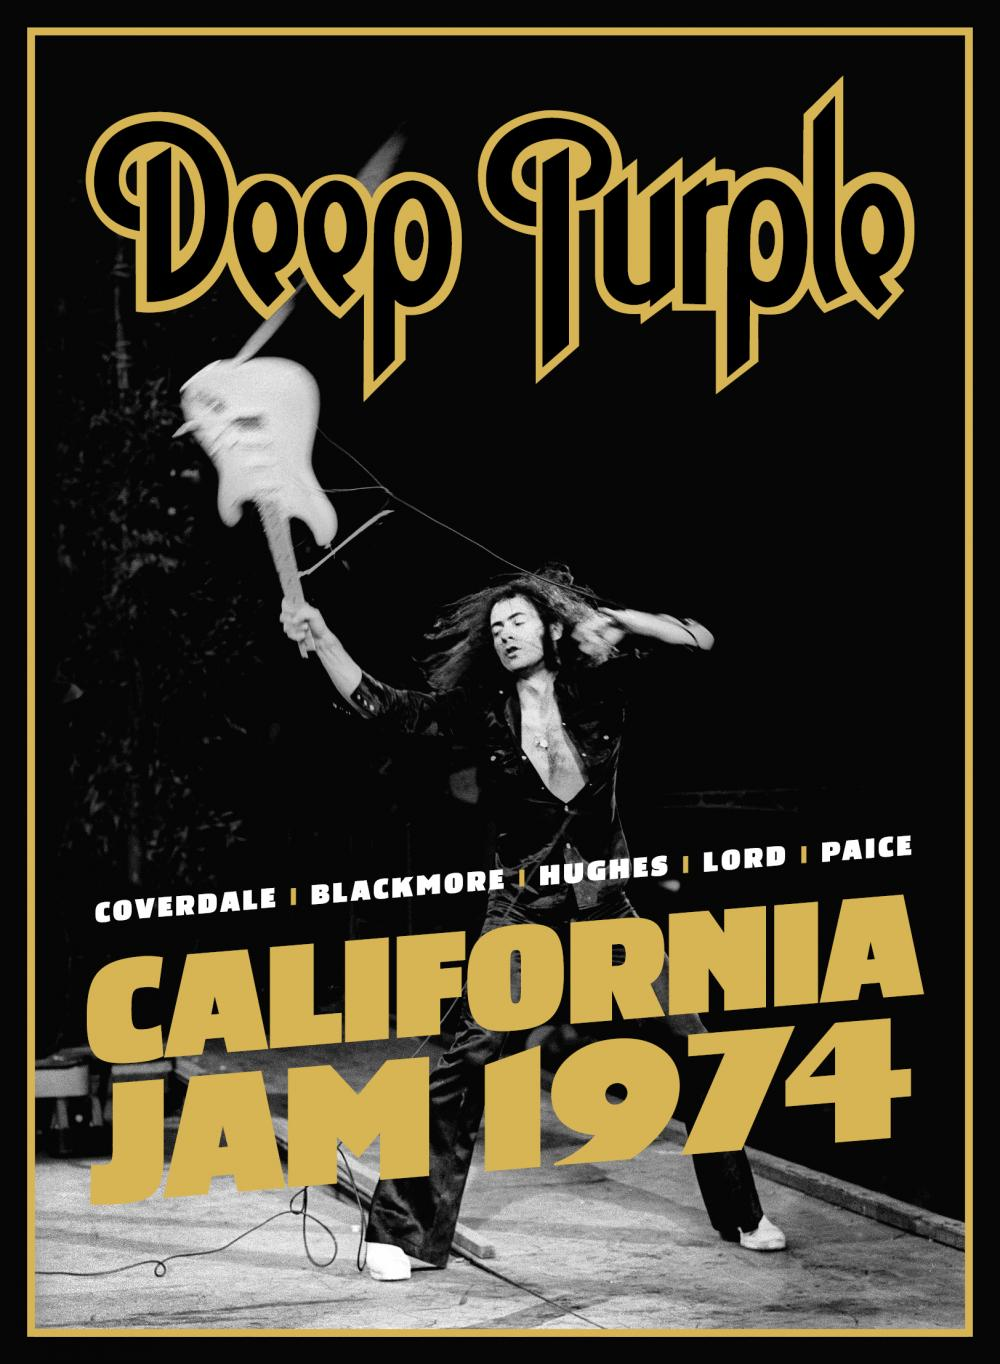 Buy Online Deep Purple - California Jam '74 DVD